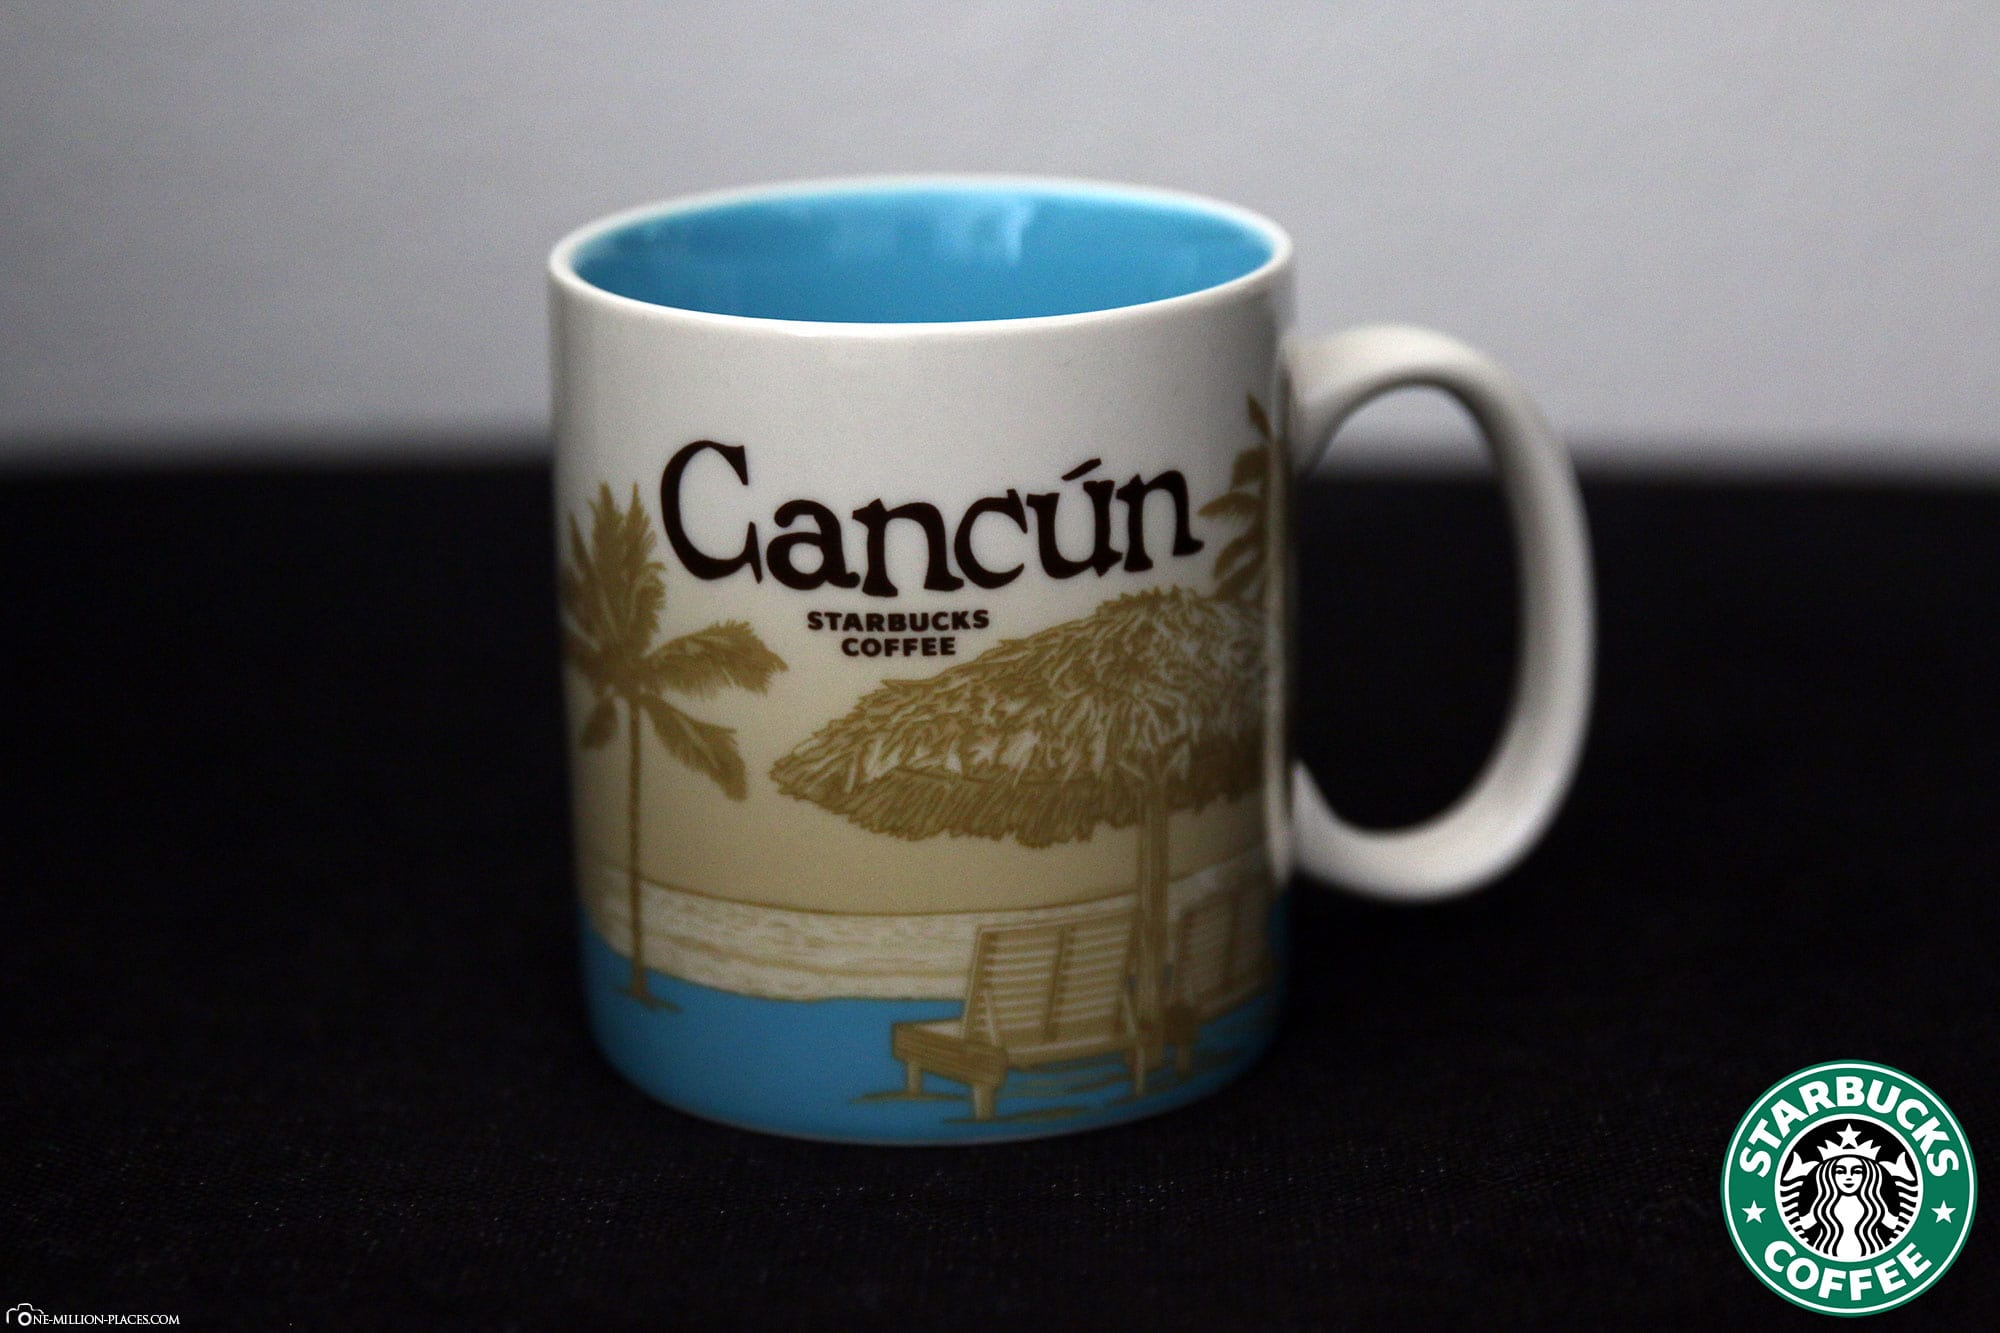 Cancun, Starbucks Tasse, Global Icon Serie, City Mugs, Sammlung, Mexiko, Reisebericht